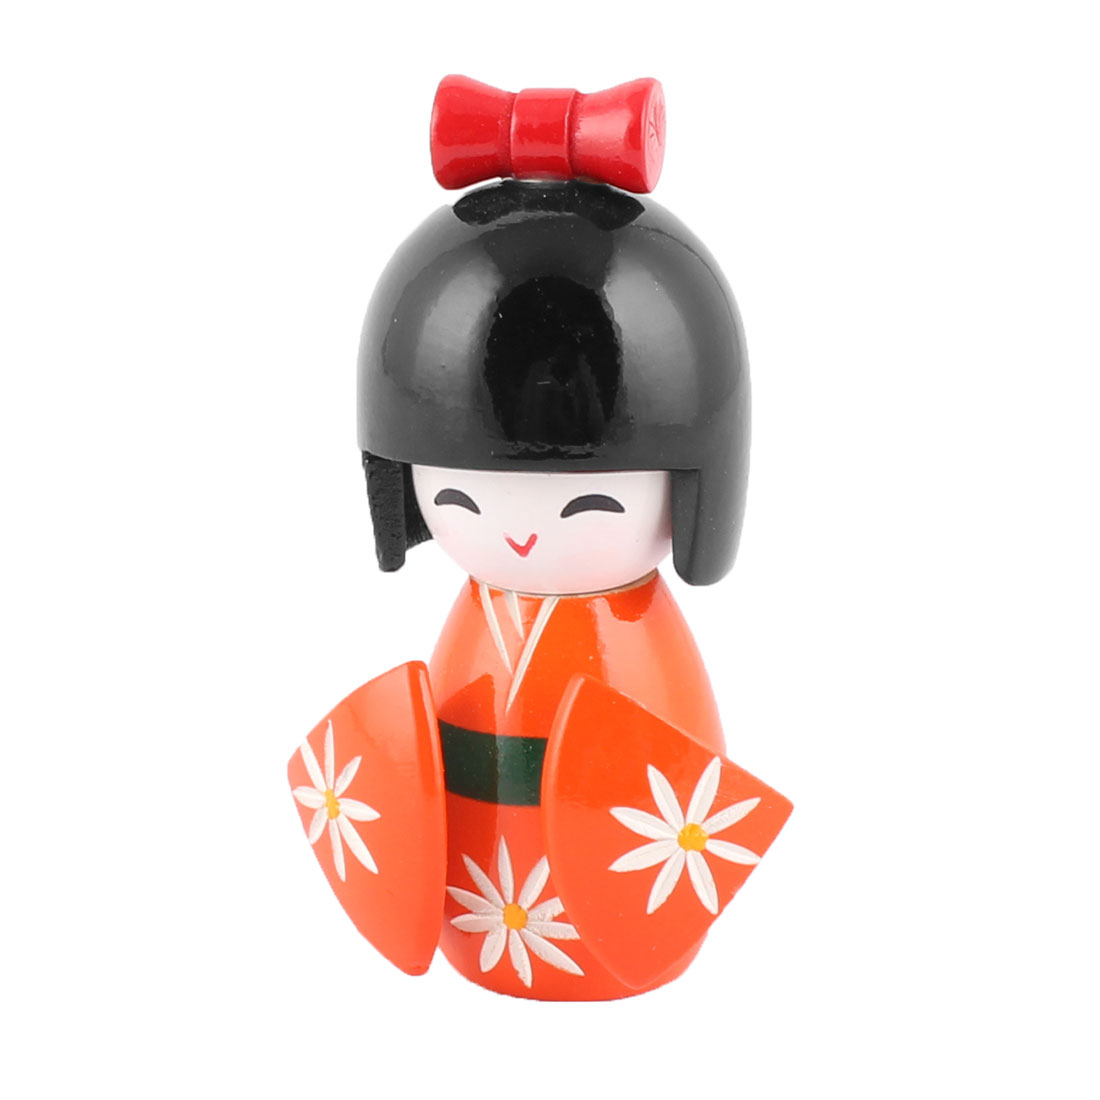 Home Wood Japenese Kokeshi Doll Designed Traditional Folk Craft Decor Orange